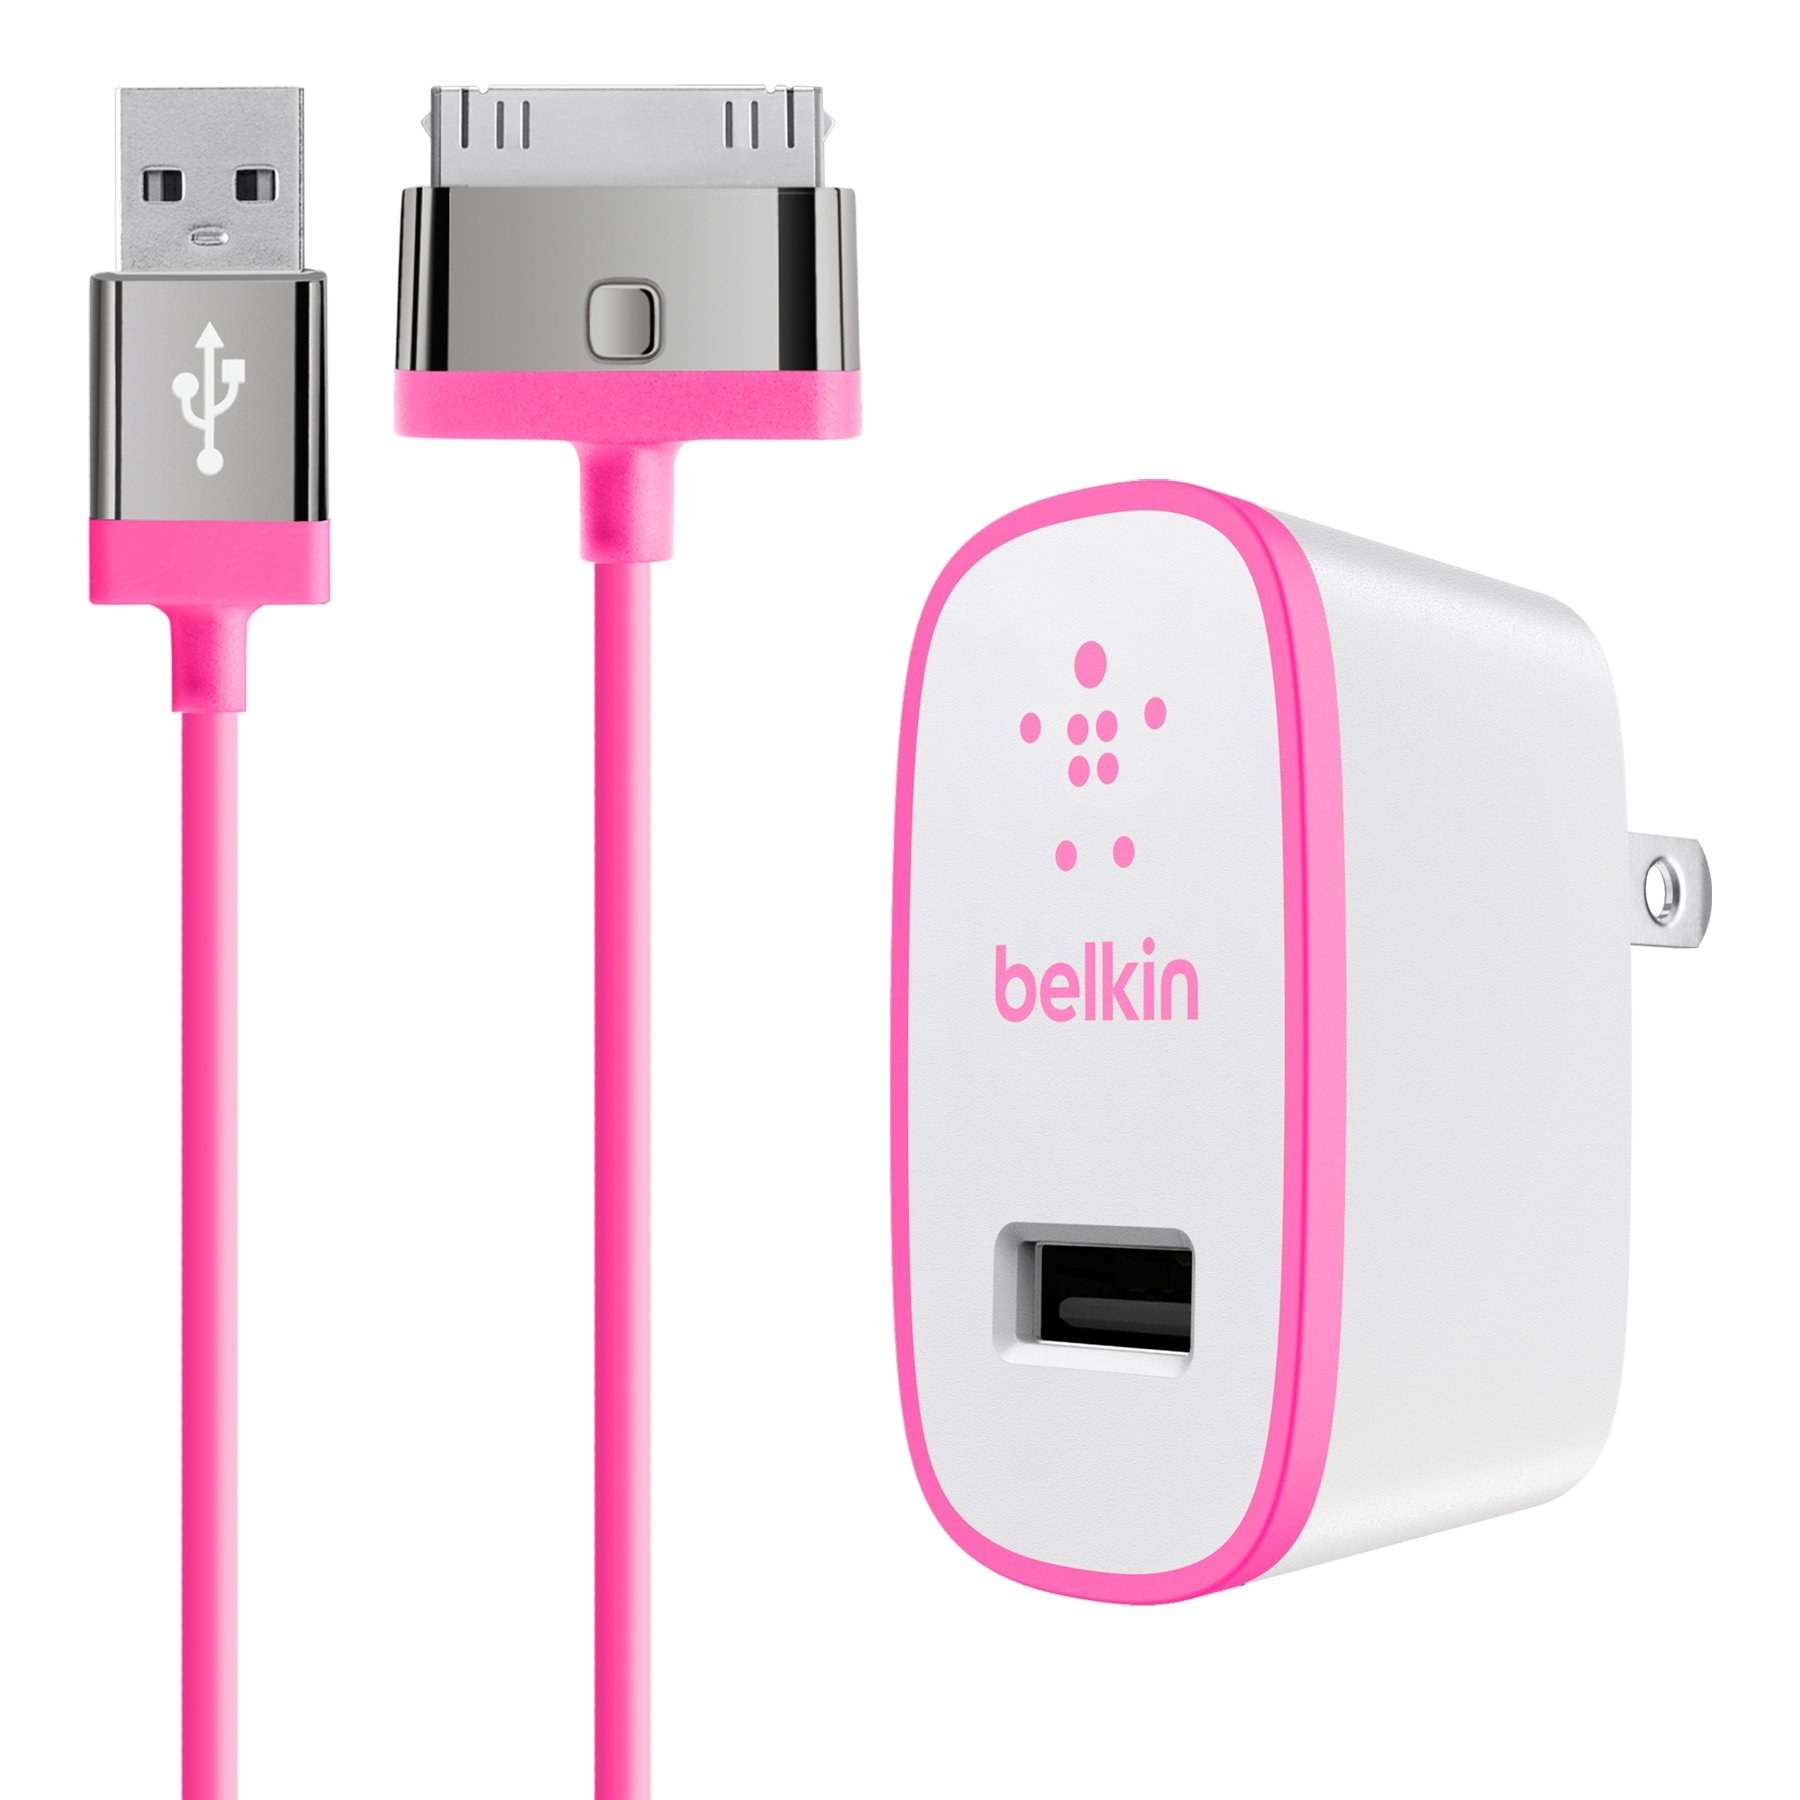 Belkin MIXIT Home Charger with 4-Foot 30-Pin Cable for iPhone 4/4S, iPad 3rd Gen and iPad 2 (2.1 AMP/10 Watt), Pink